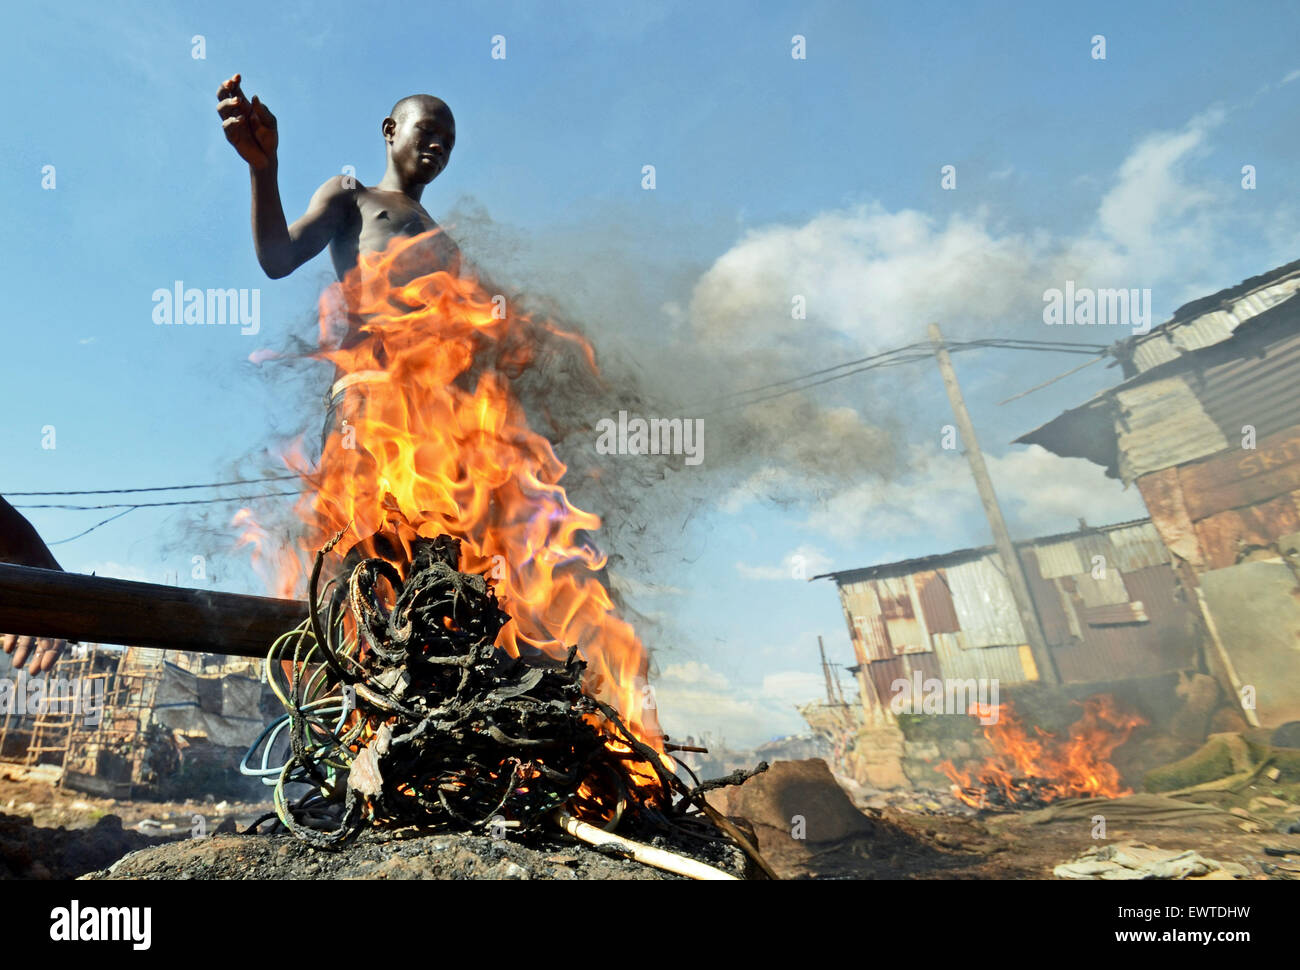 A boy burns electrical cables to extract the copper wire in Kroo Bay slum, Freetown, SierraLeone - Stock Image